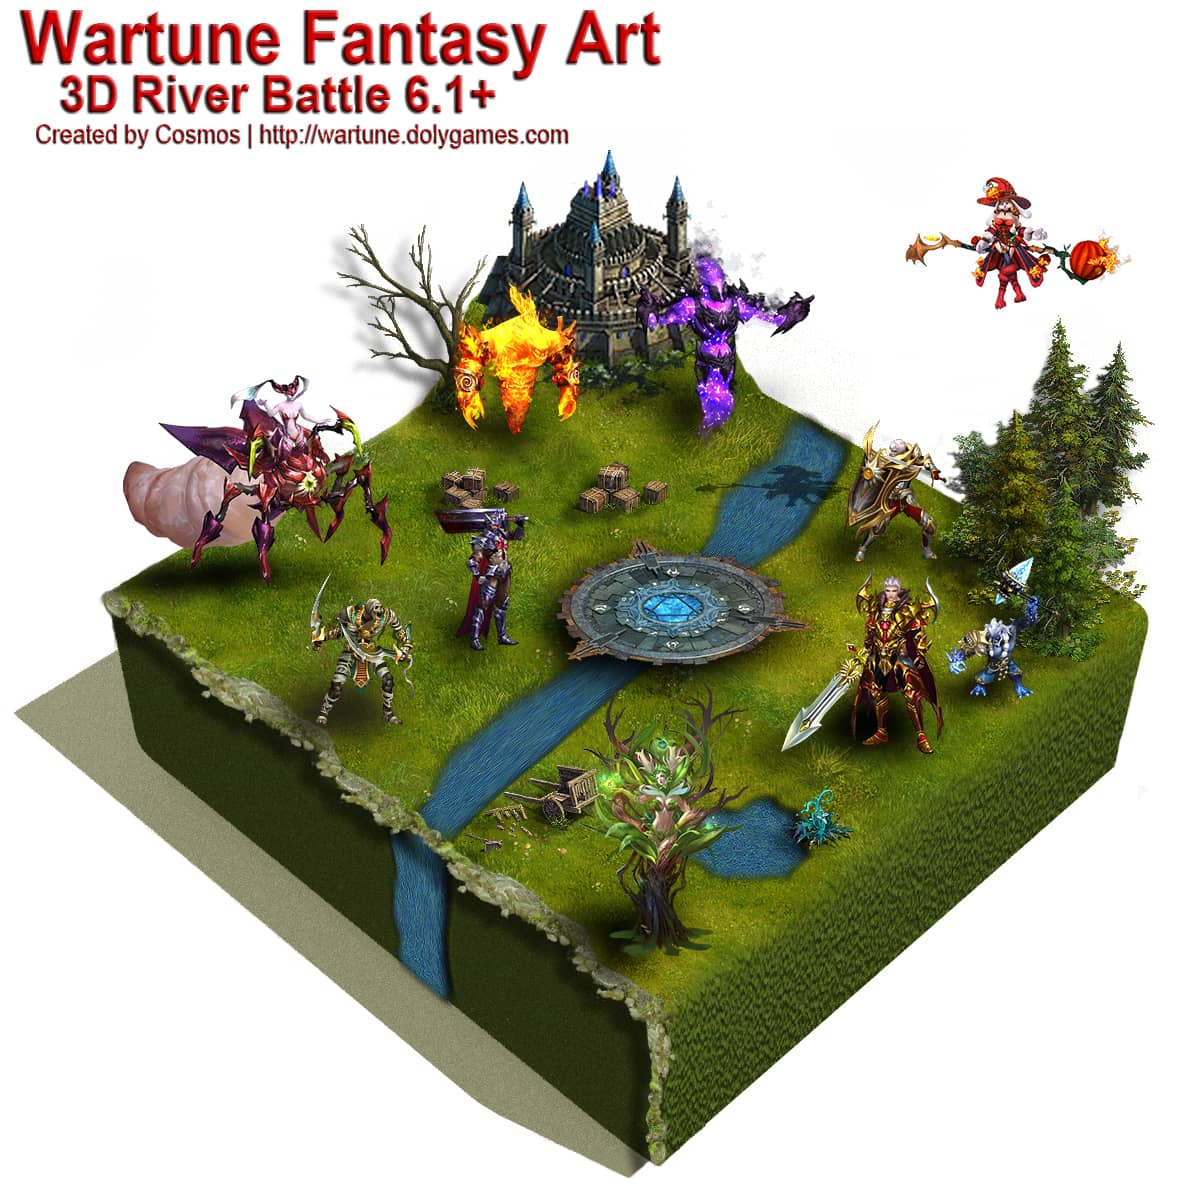 Wartune Fantasy Art 3D River Battle 6.1+ by COSMOS